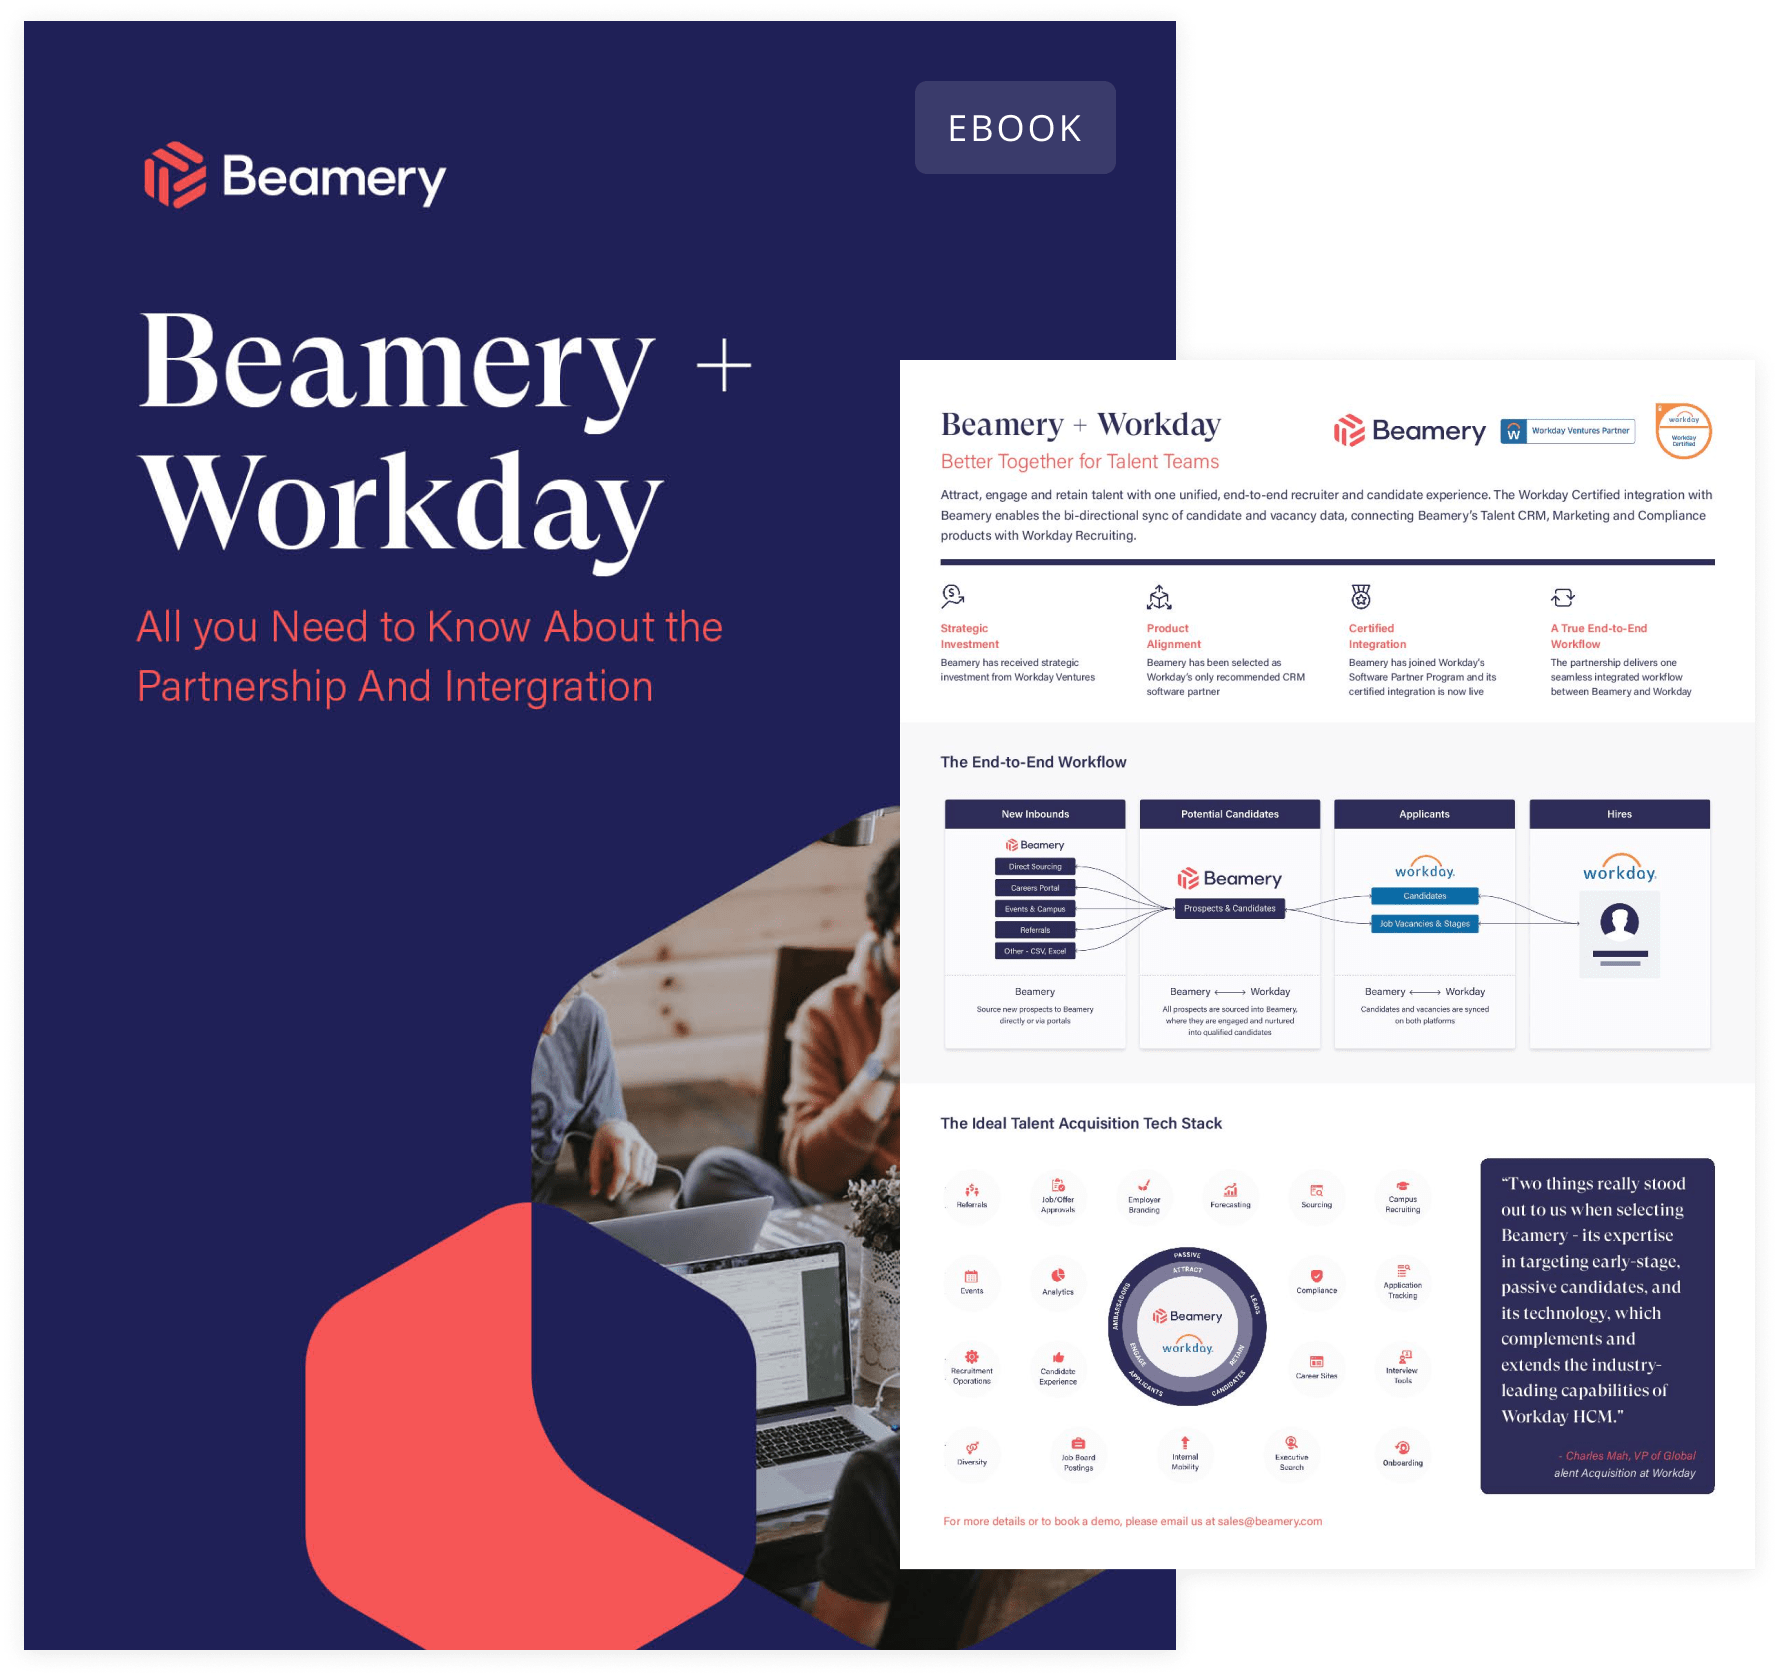 Beamery + Workday Better Together for Talent Teams